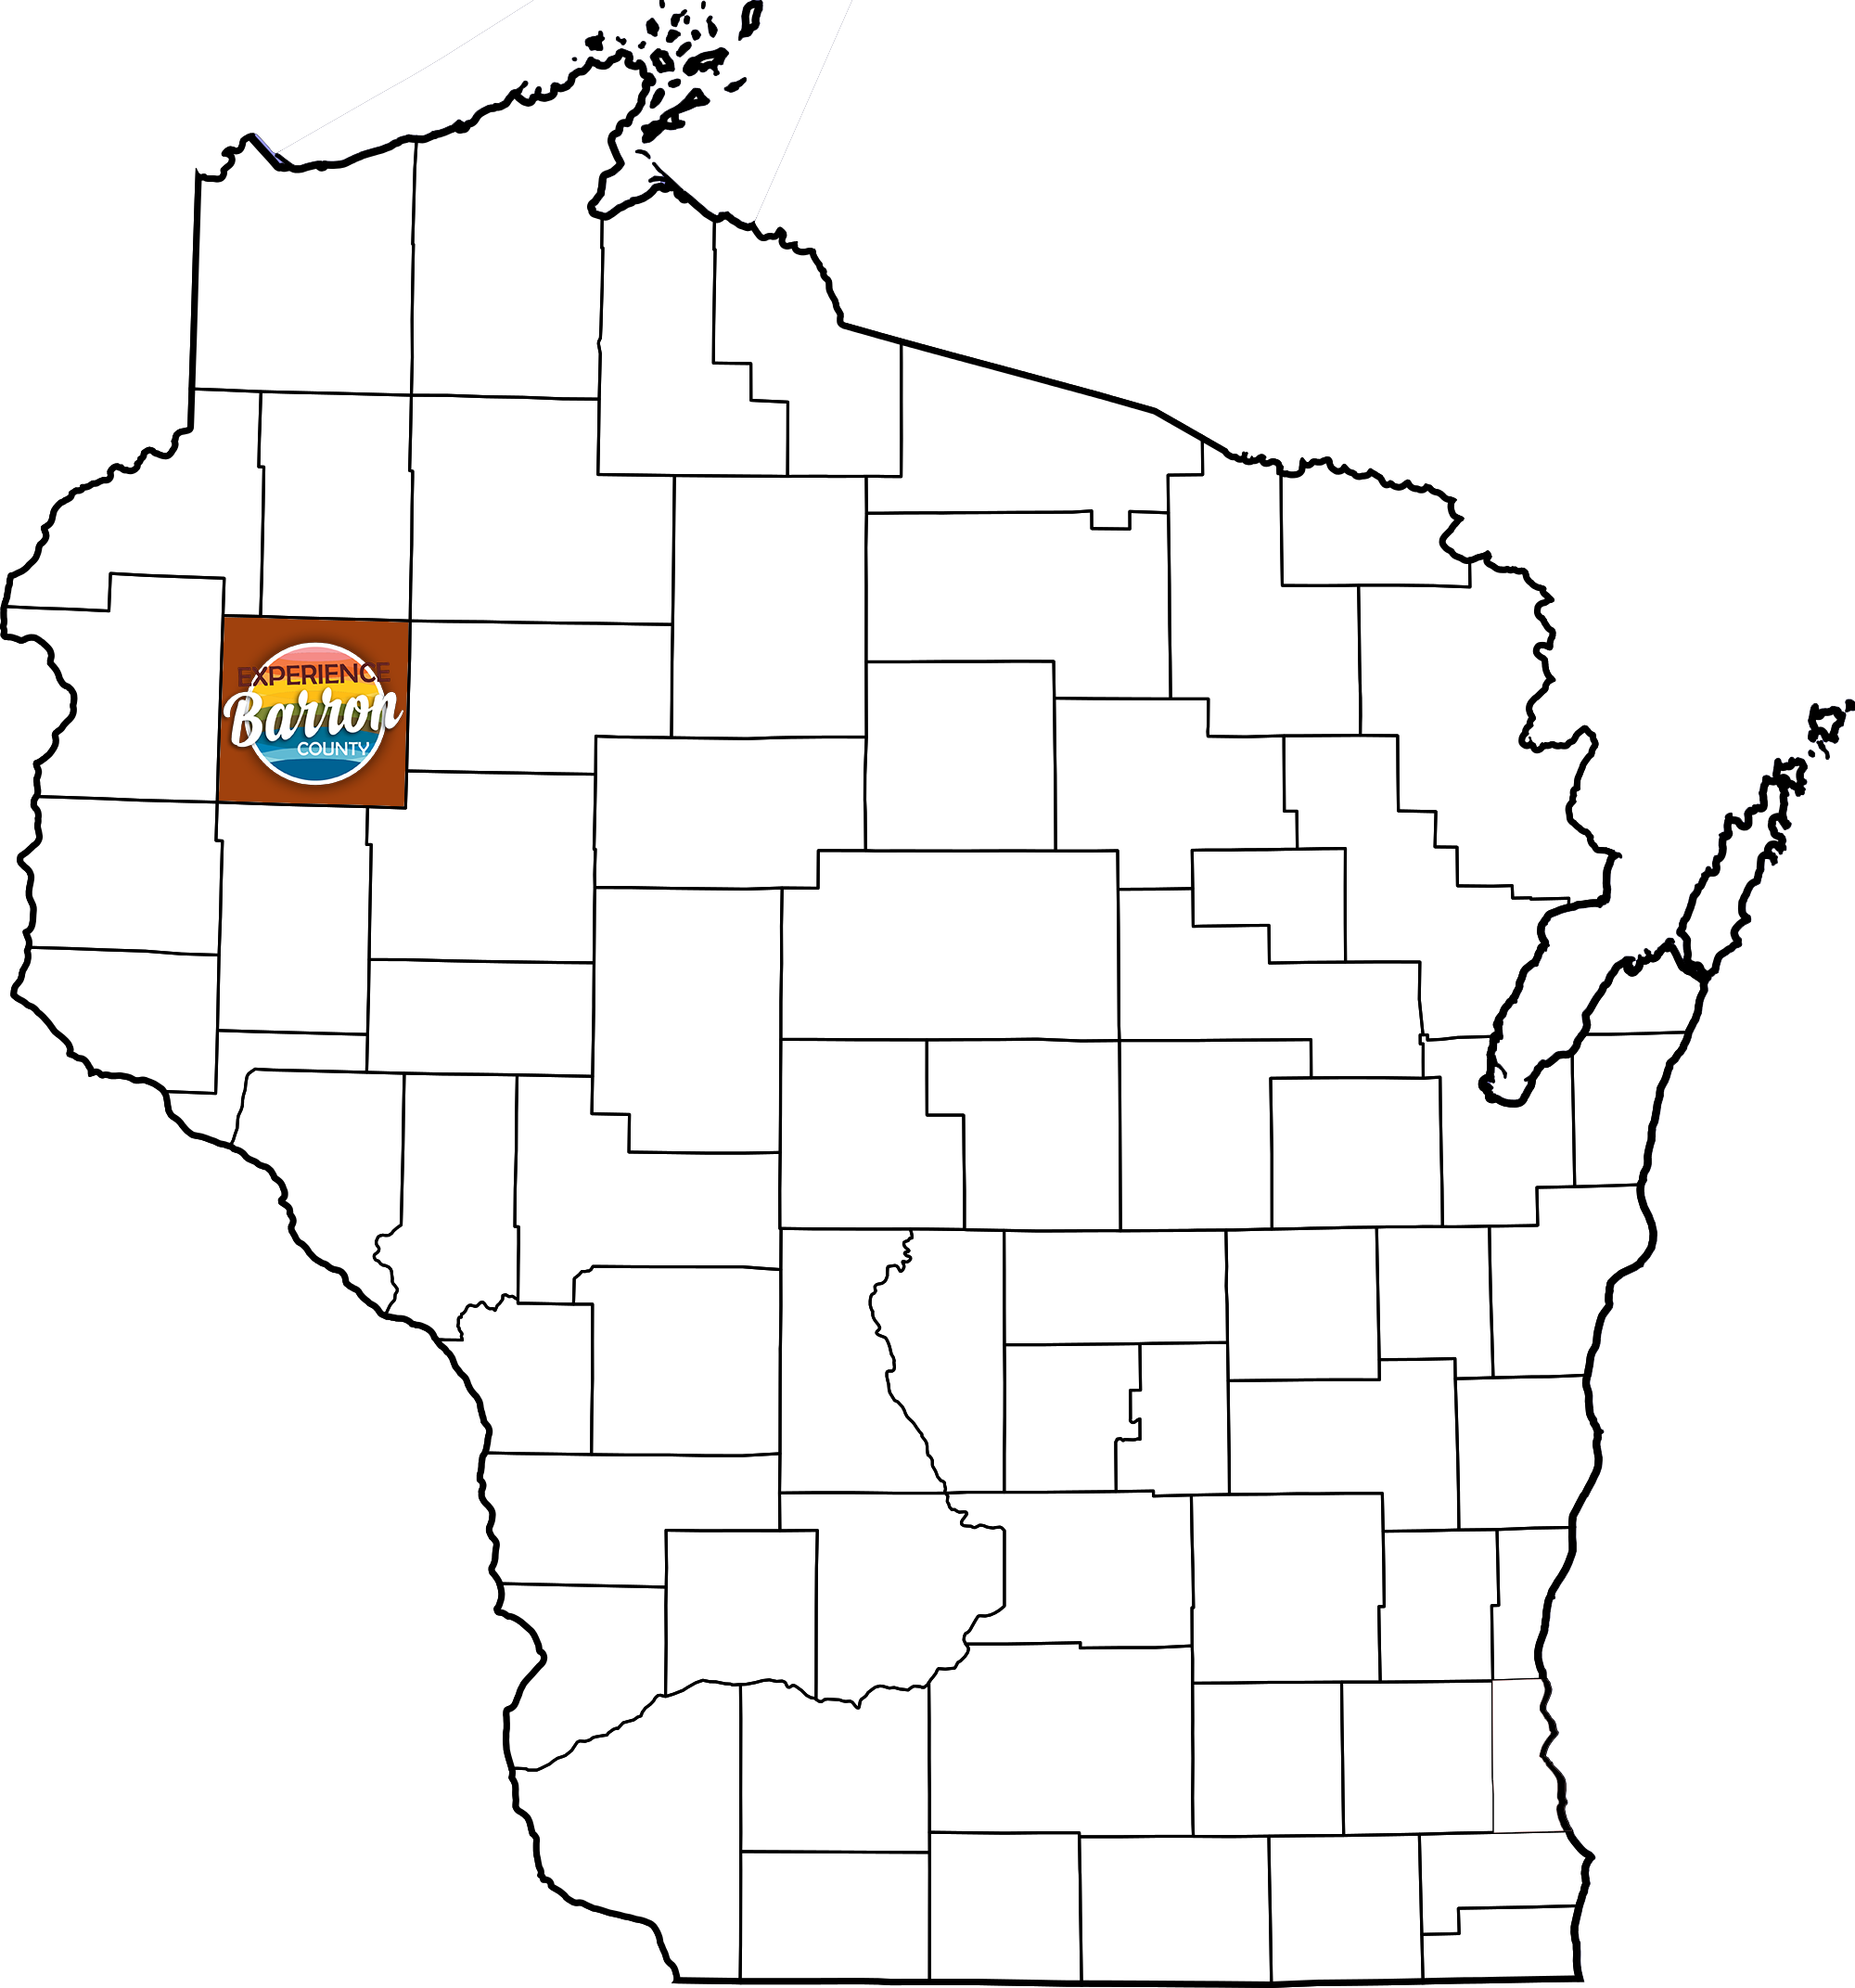 barron county wisconsin map copy.png